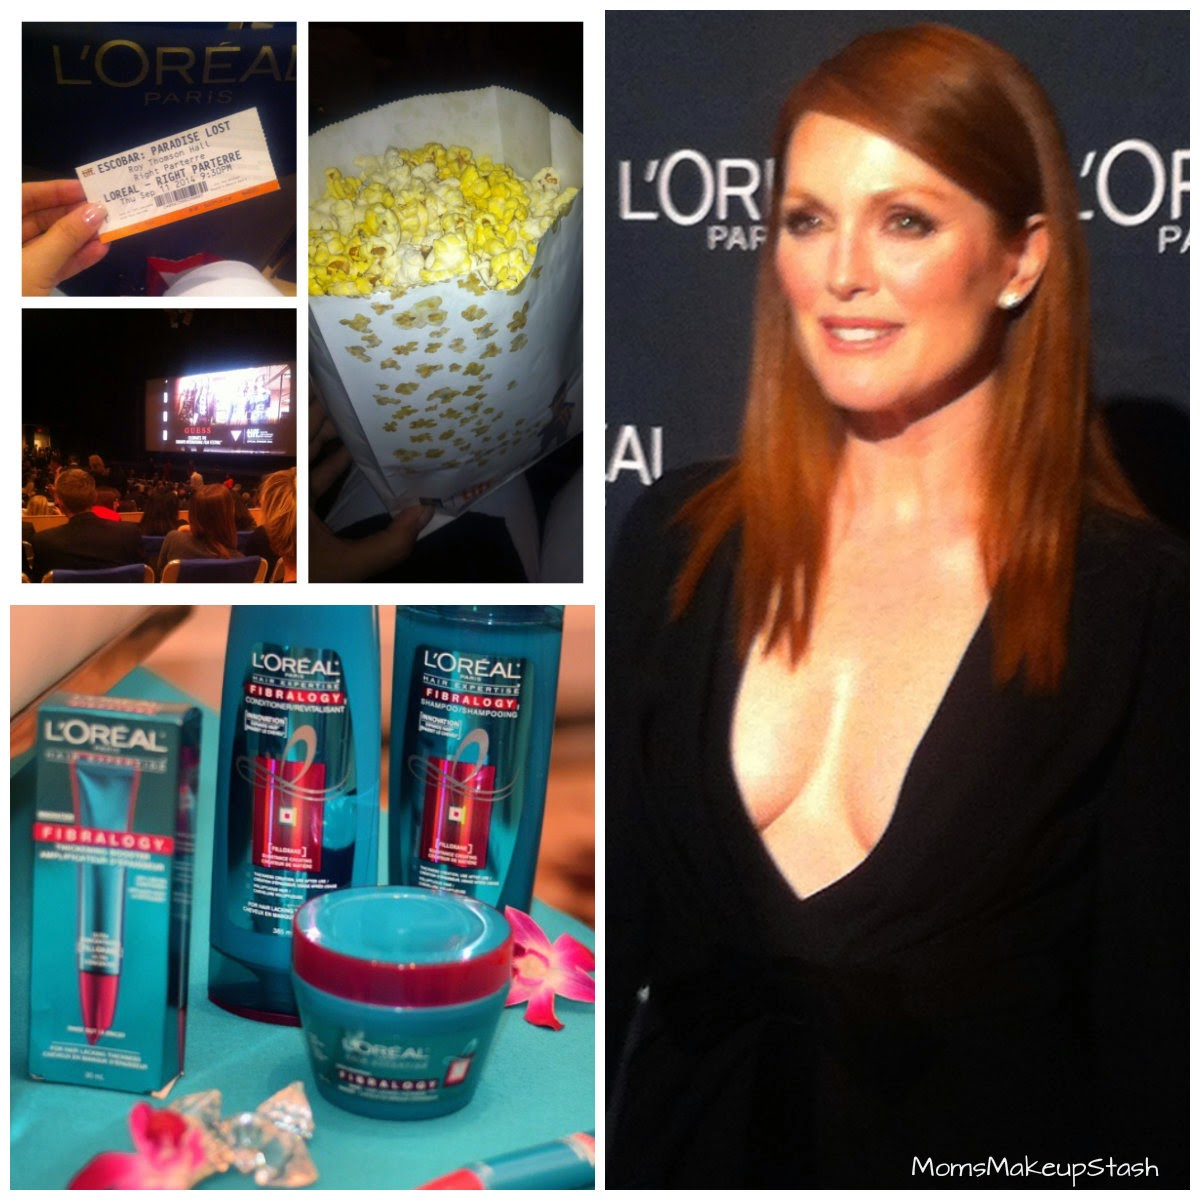 TIFF Beauty, TIFF 2014, L'Oreal Paris, L'Oreal Paris Fibraology, L'Oreal Hair Review, Julianne Moore, Escobar, Tiff Movie, Tiff Screening